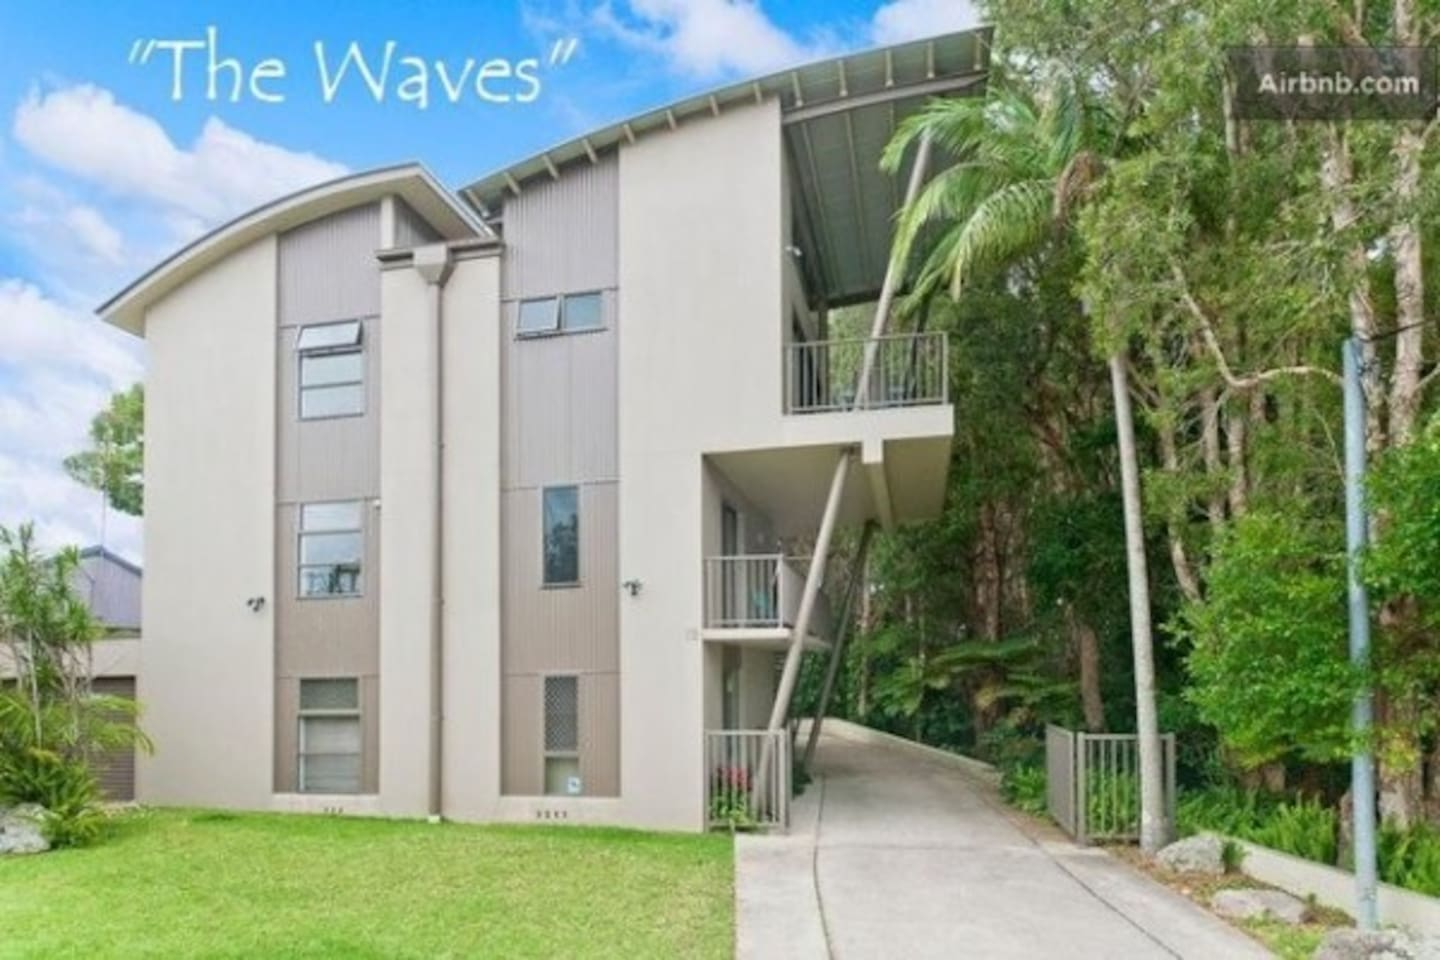 The Waves - A private retreat with only three apartments in the block.